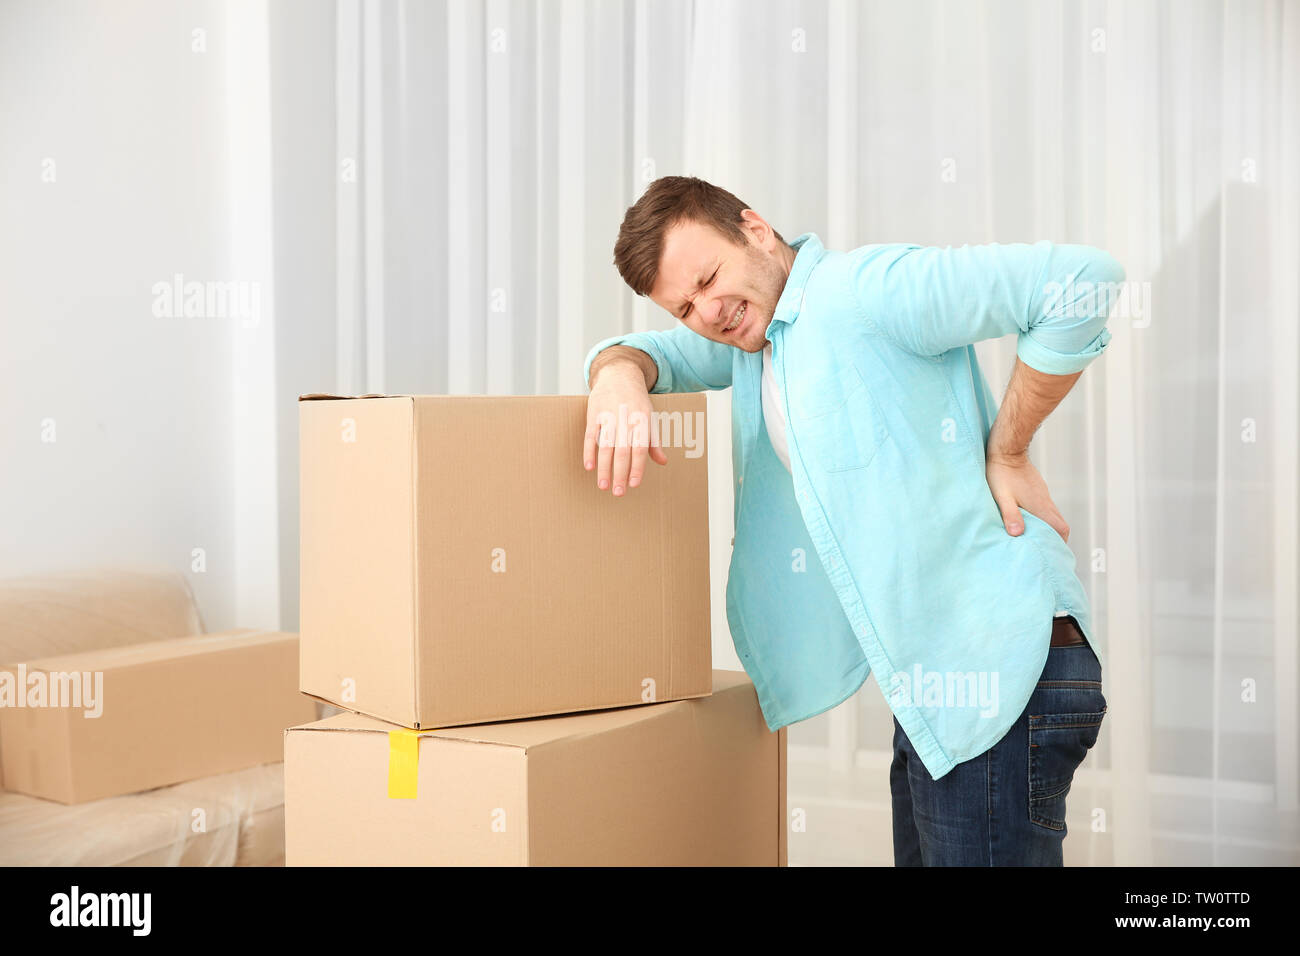 Young man suffering from pain after moving heavy box - Stock Image